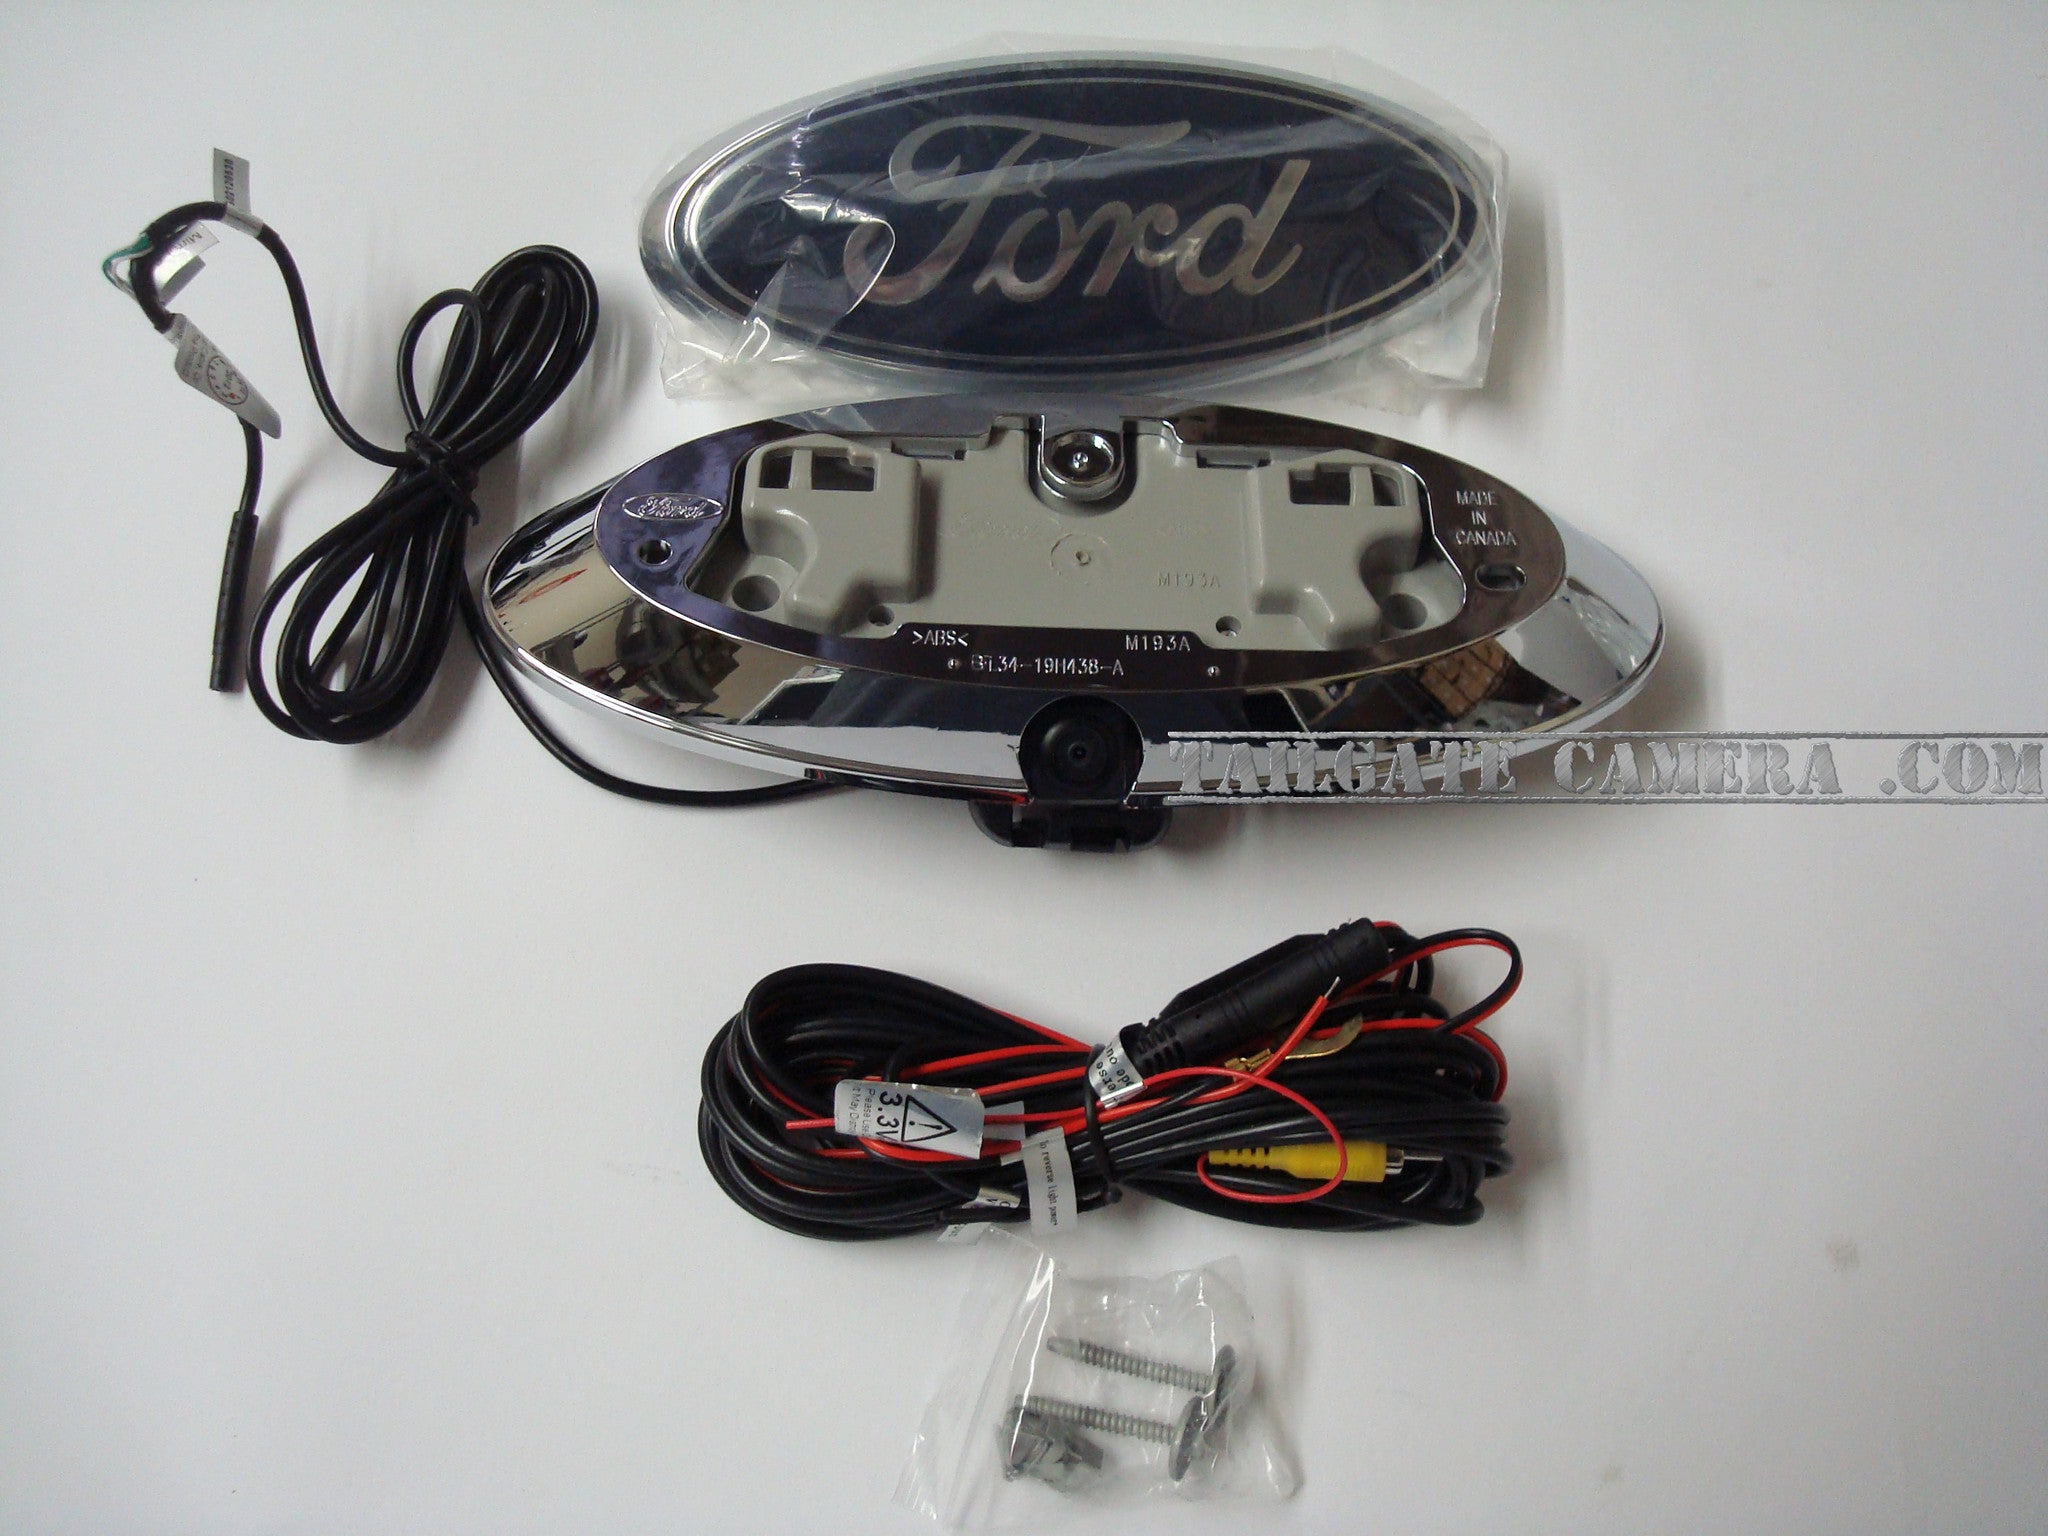 Ford Trailer Wiring Kit Schematic Diagrams F 450 Diagram For Lights Engine Schematics And Oem Harness Trusted Adapter Backup Sensor